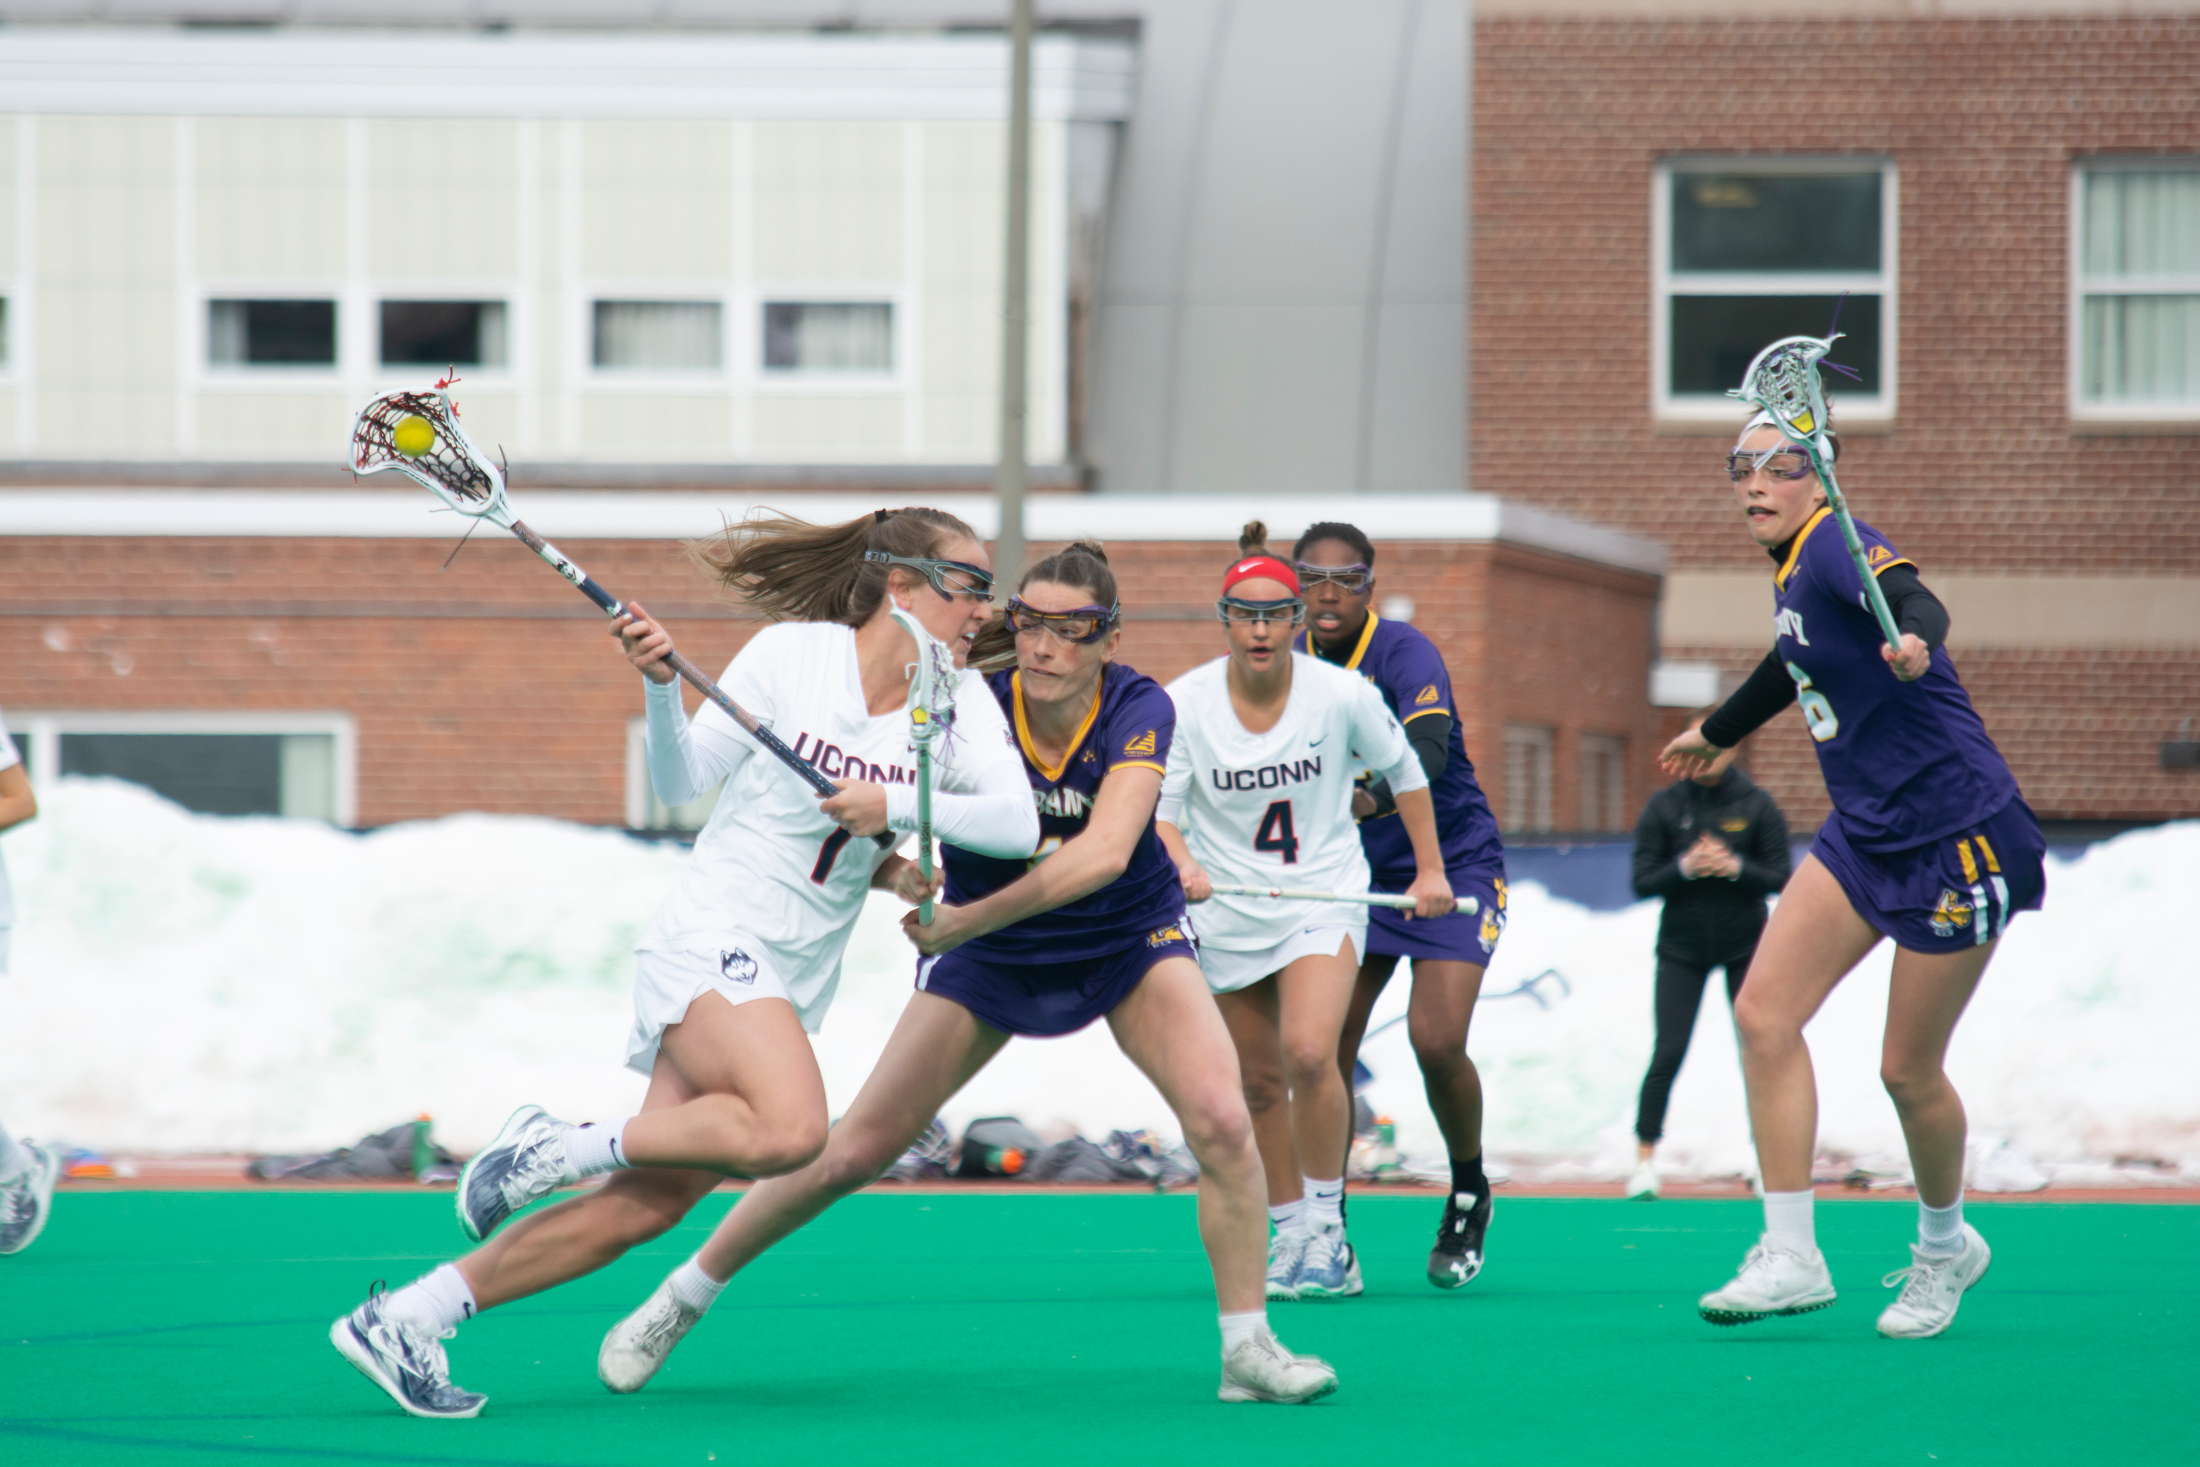 Junior Olivia Miles attacks with the ball earlier this year (Nicholas Hampton/The Daily Campus)